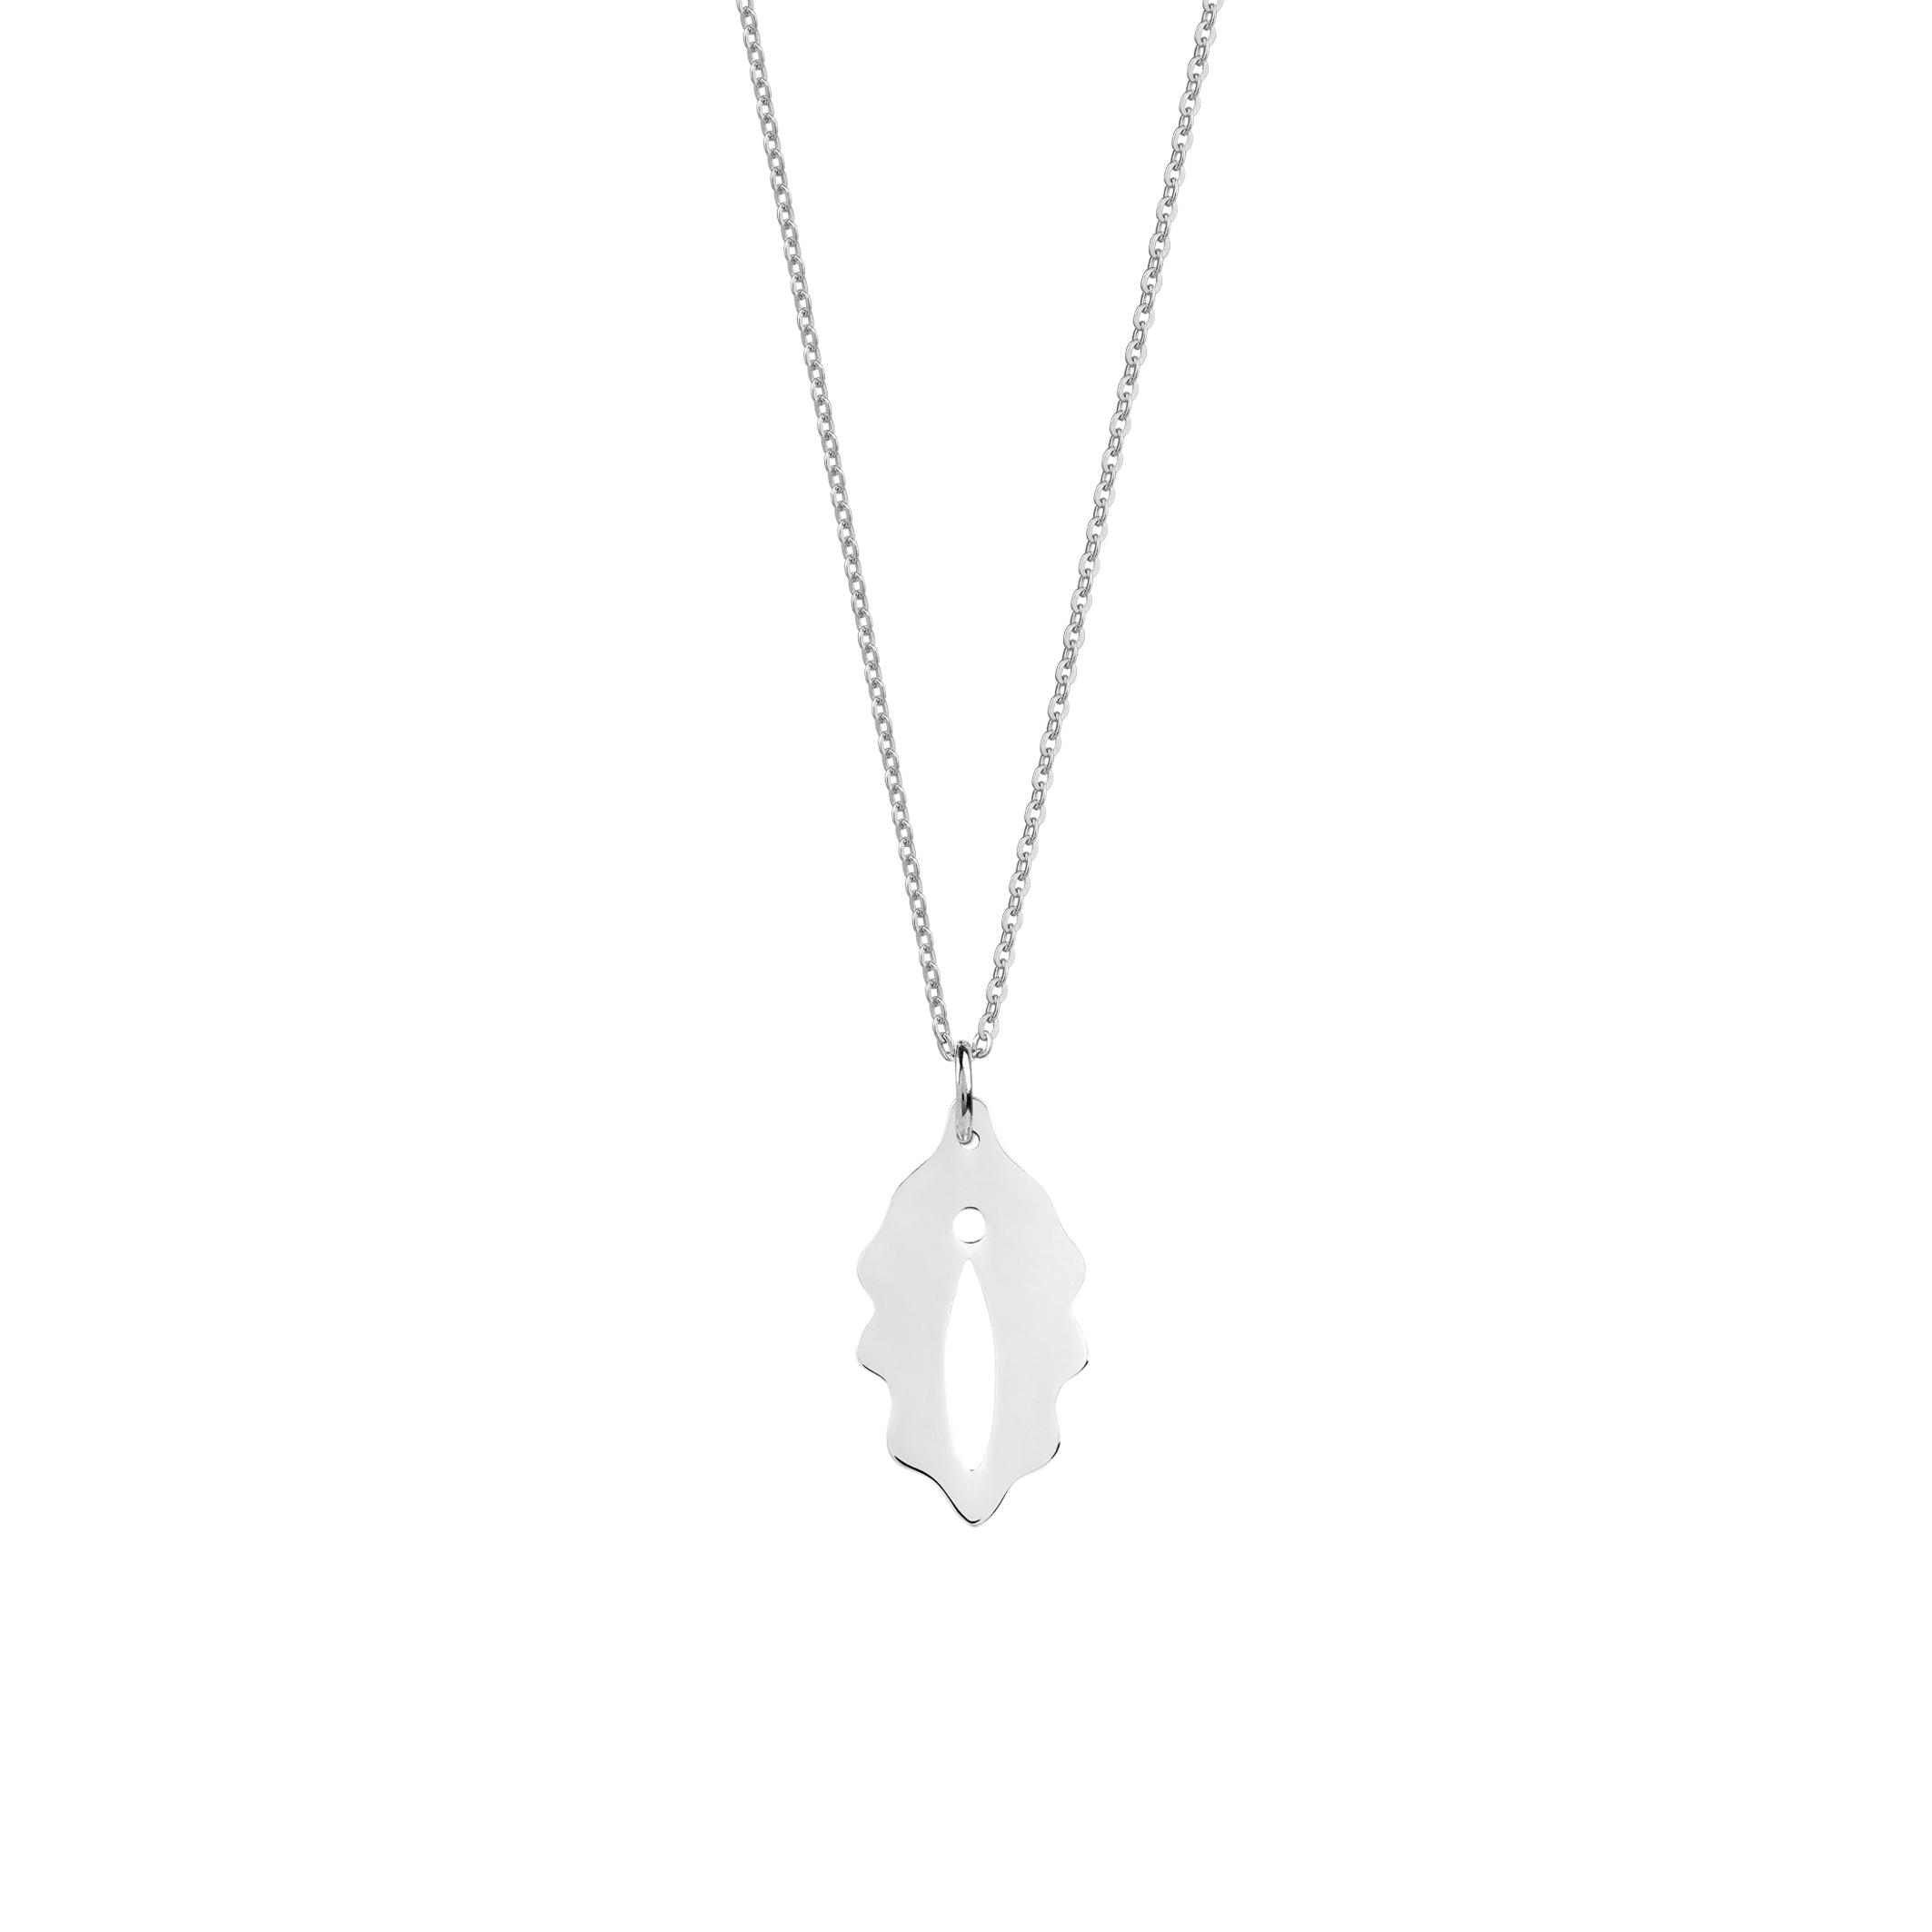 limited edition/ féminin necklace silver